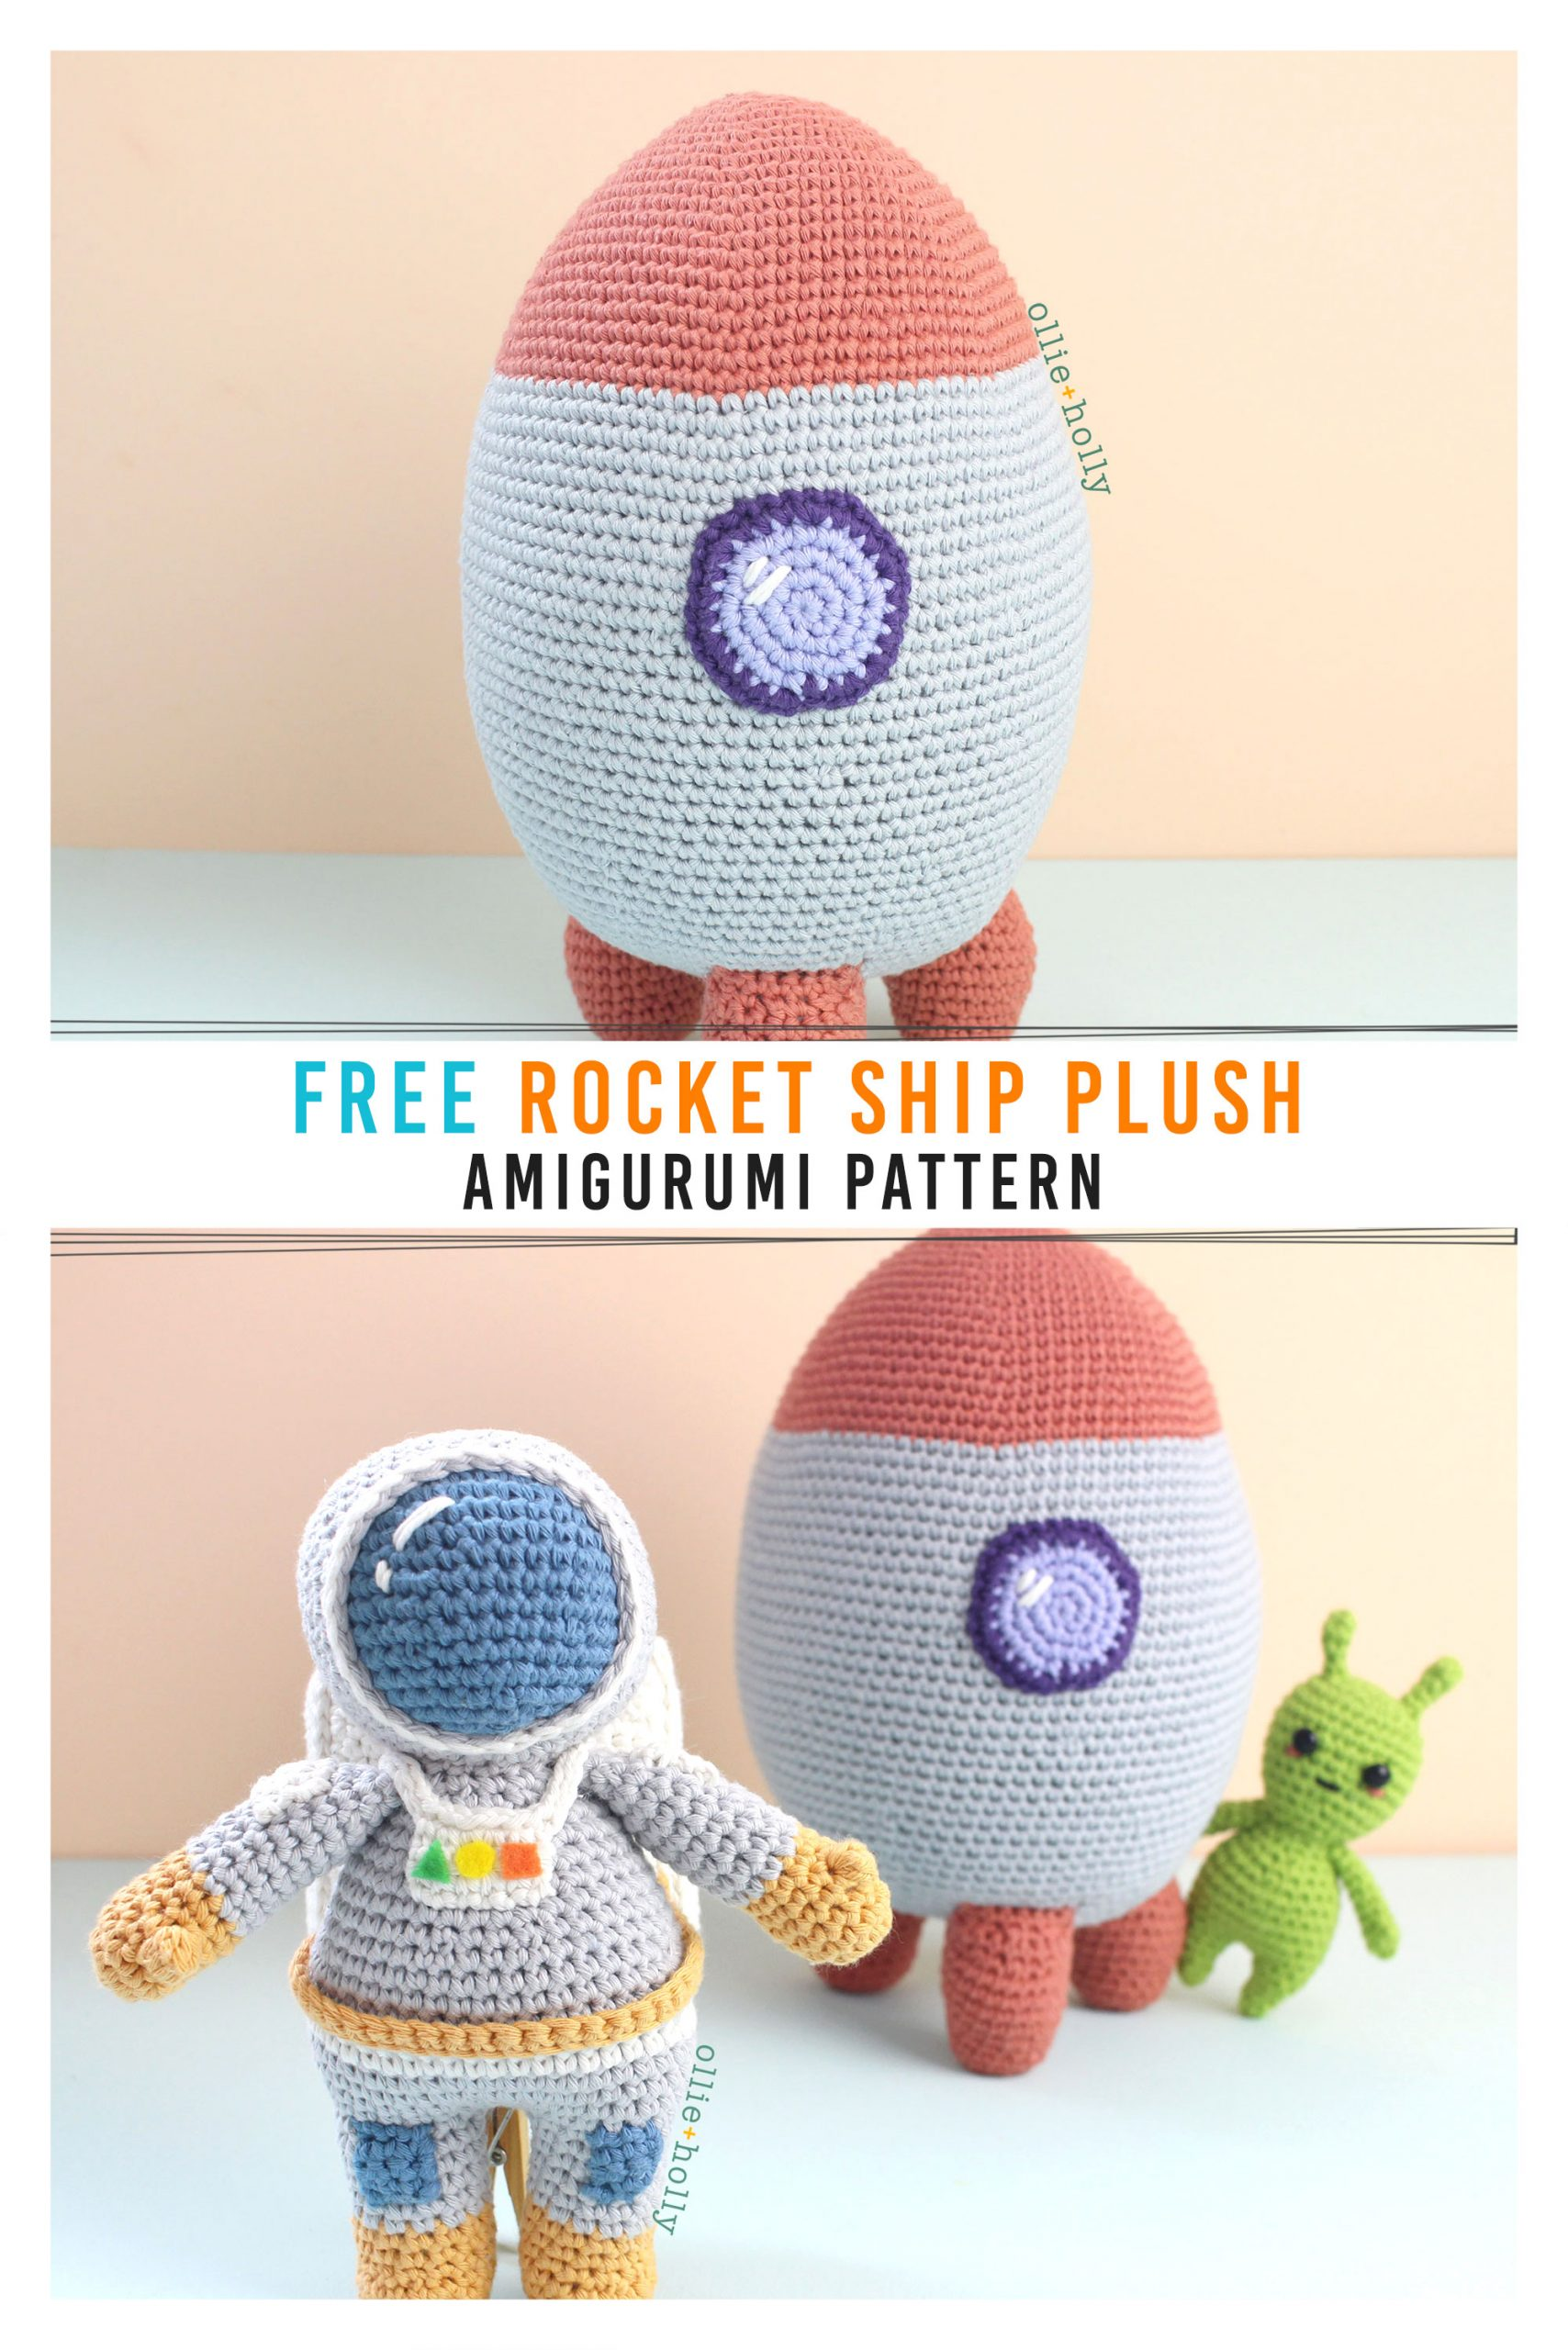 Free Rocket Ship Amigurumi Crochet Pattern